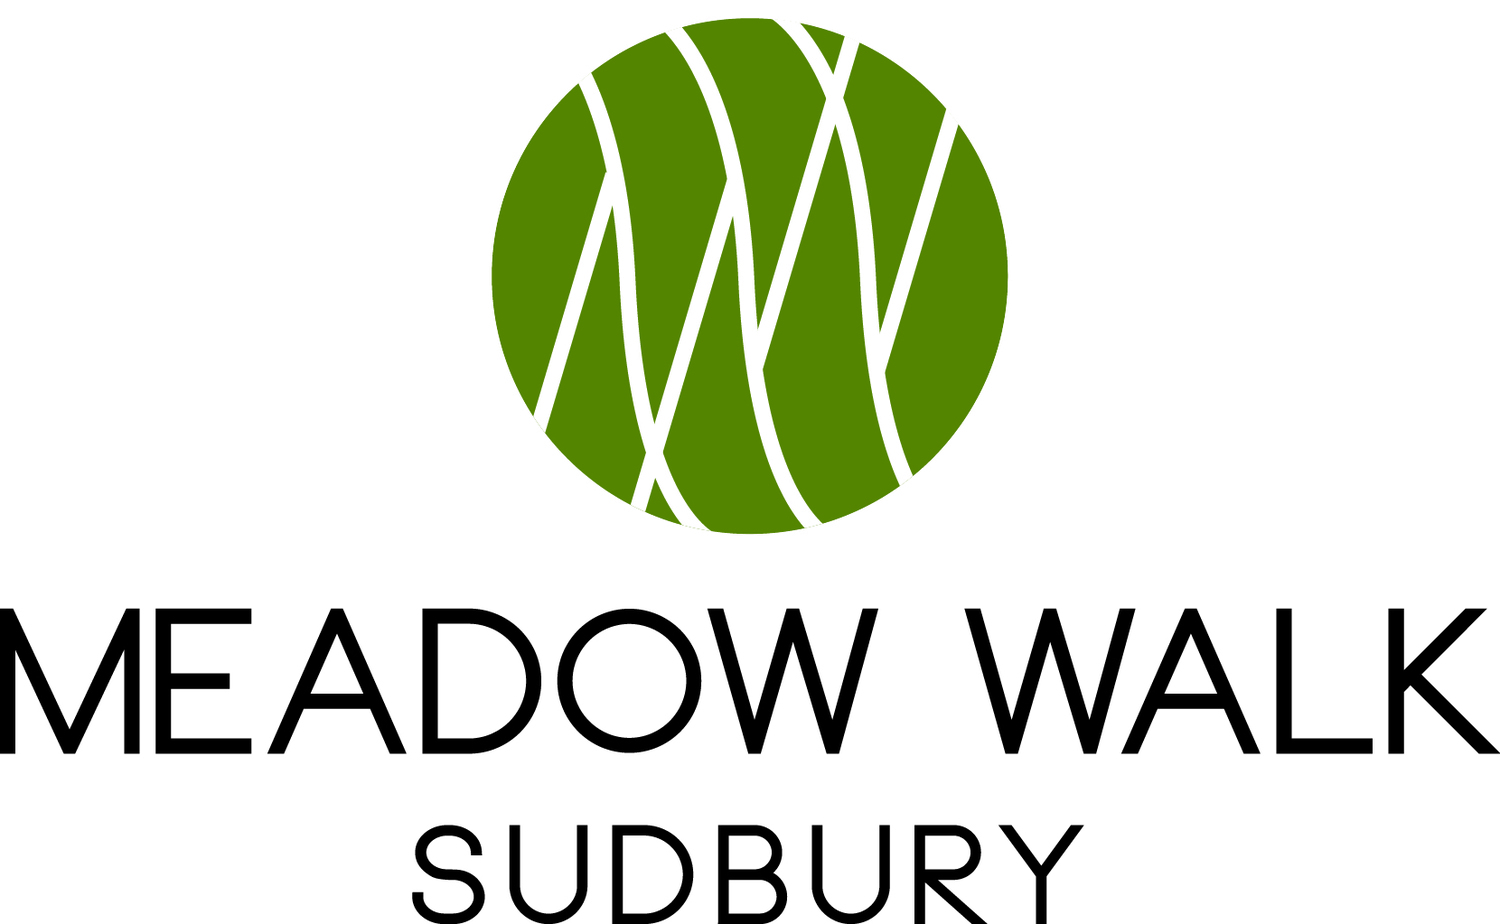 Meadow Walk Sudbury